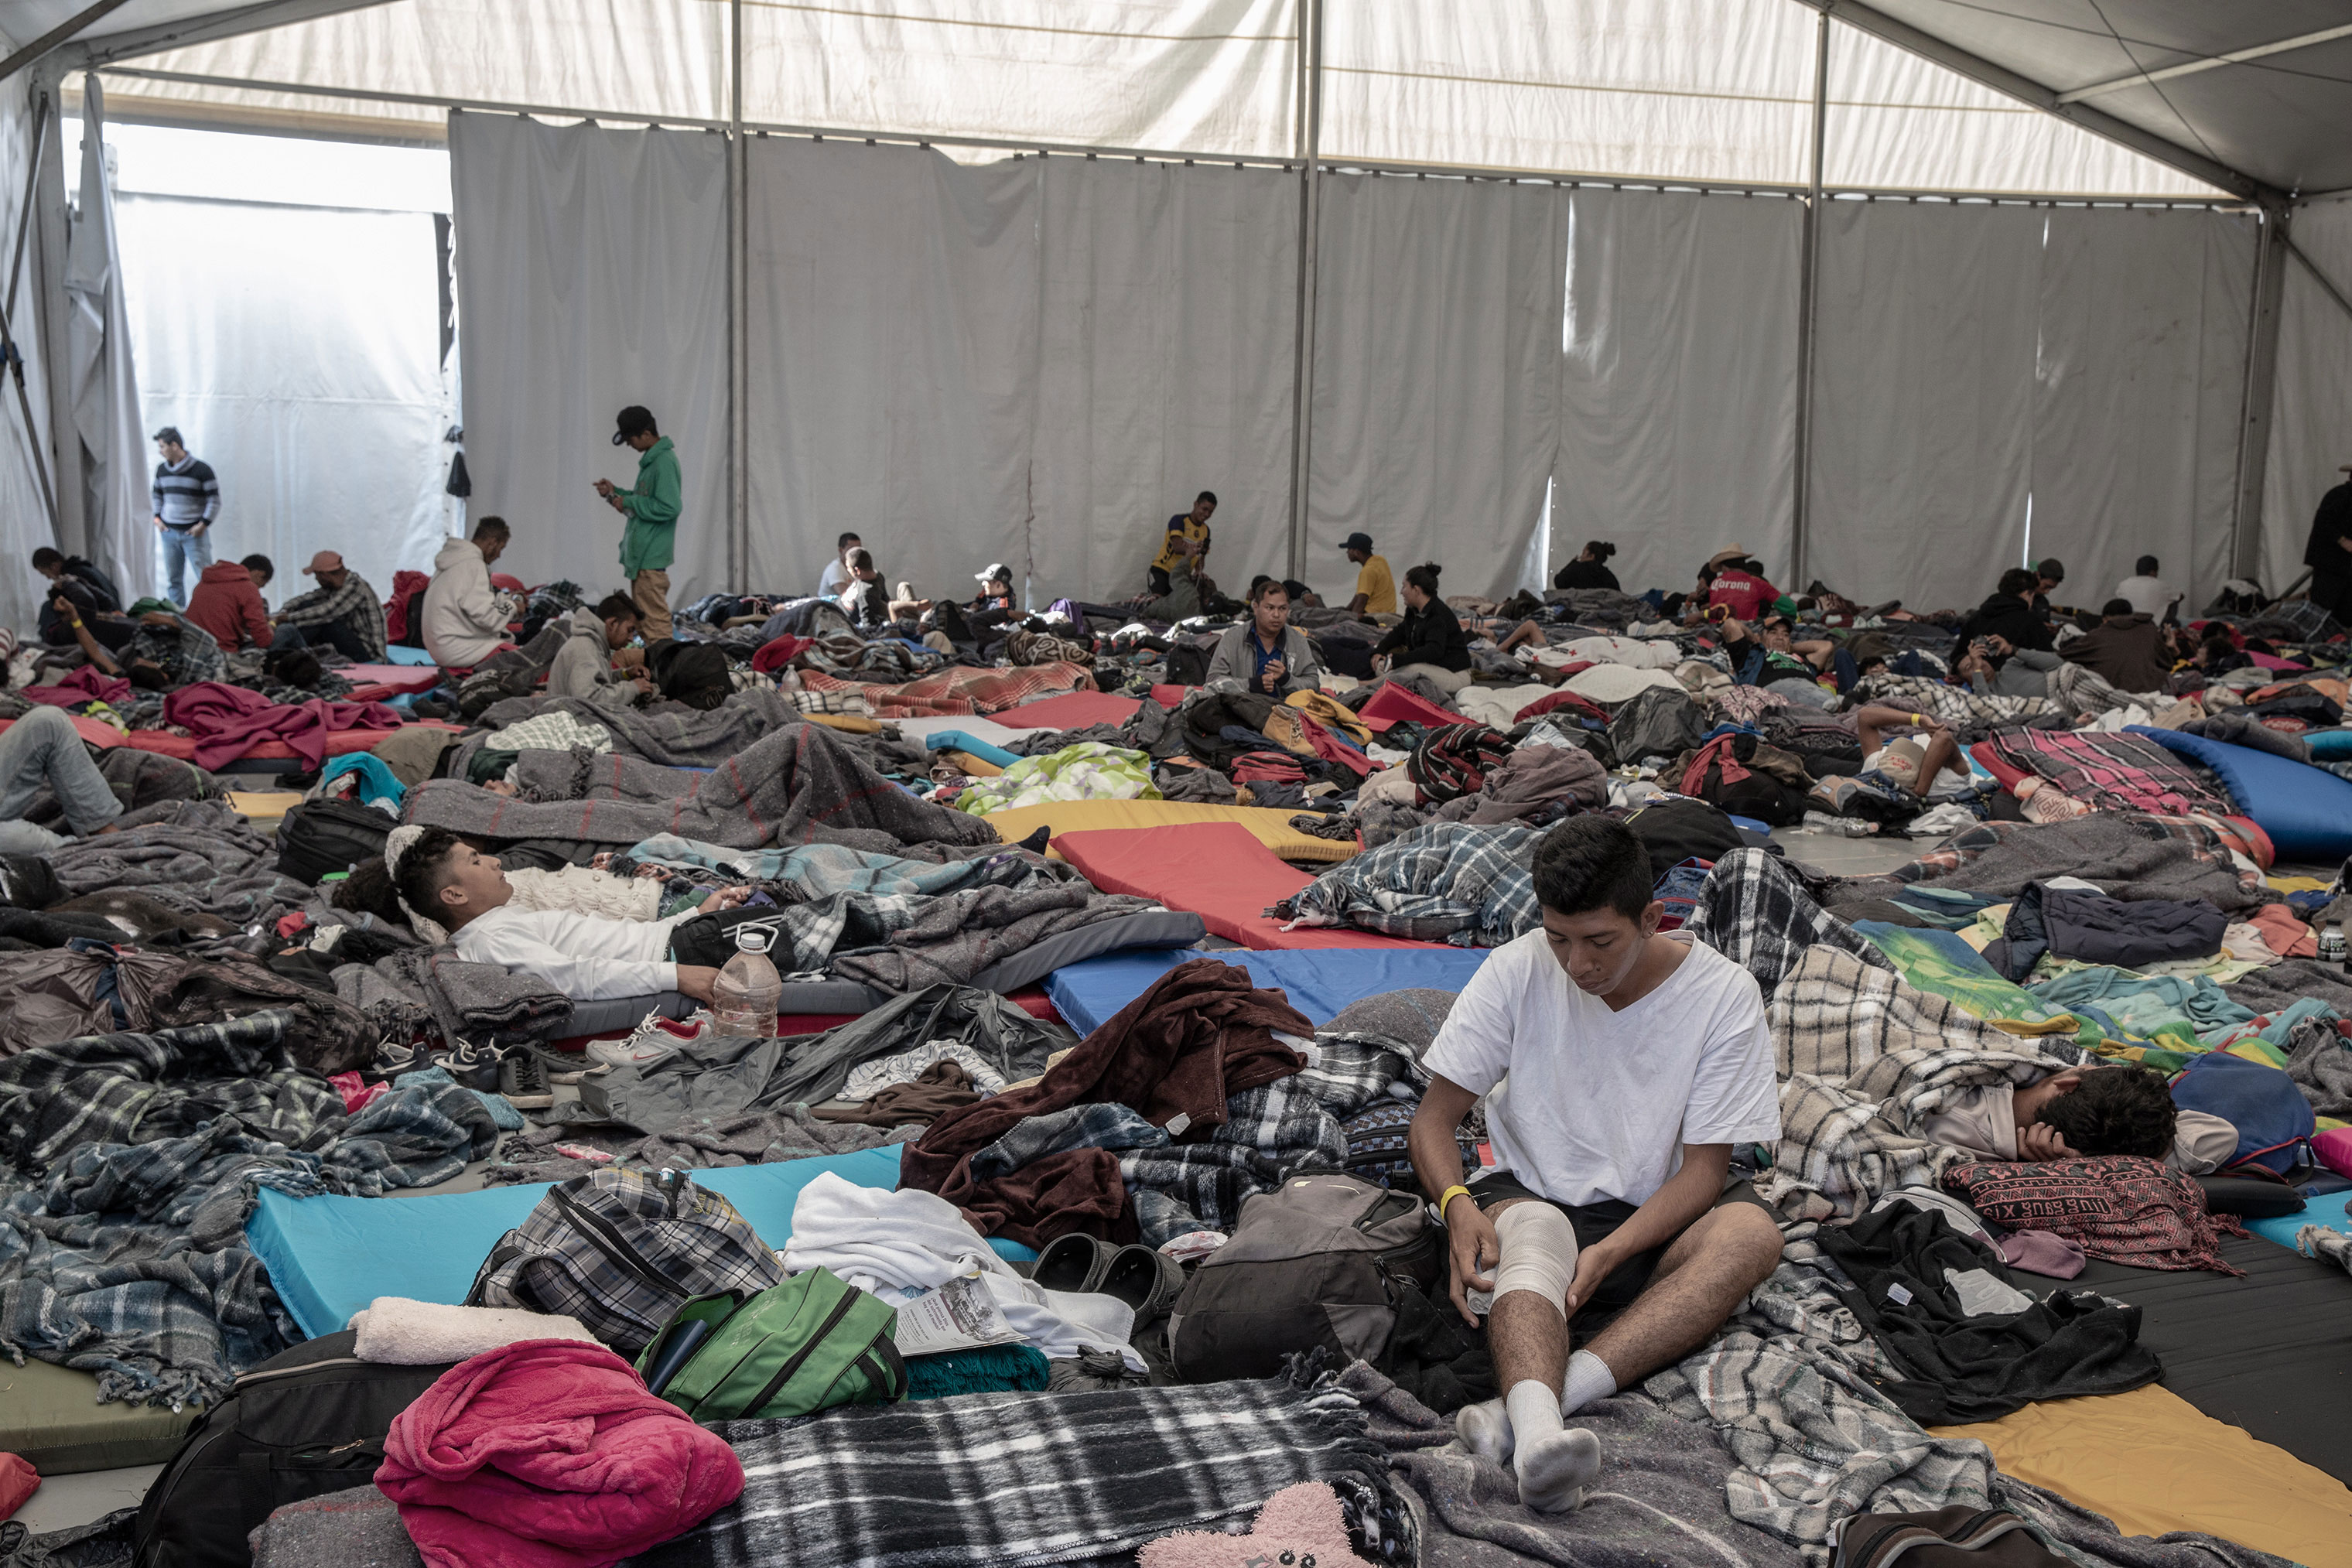 Migrants waking up inside one of the several tents that volunteers set up inside the Jesus Martinez stadium in Mexico City, Nov. 7, 2018.